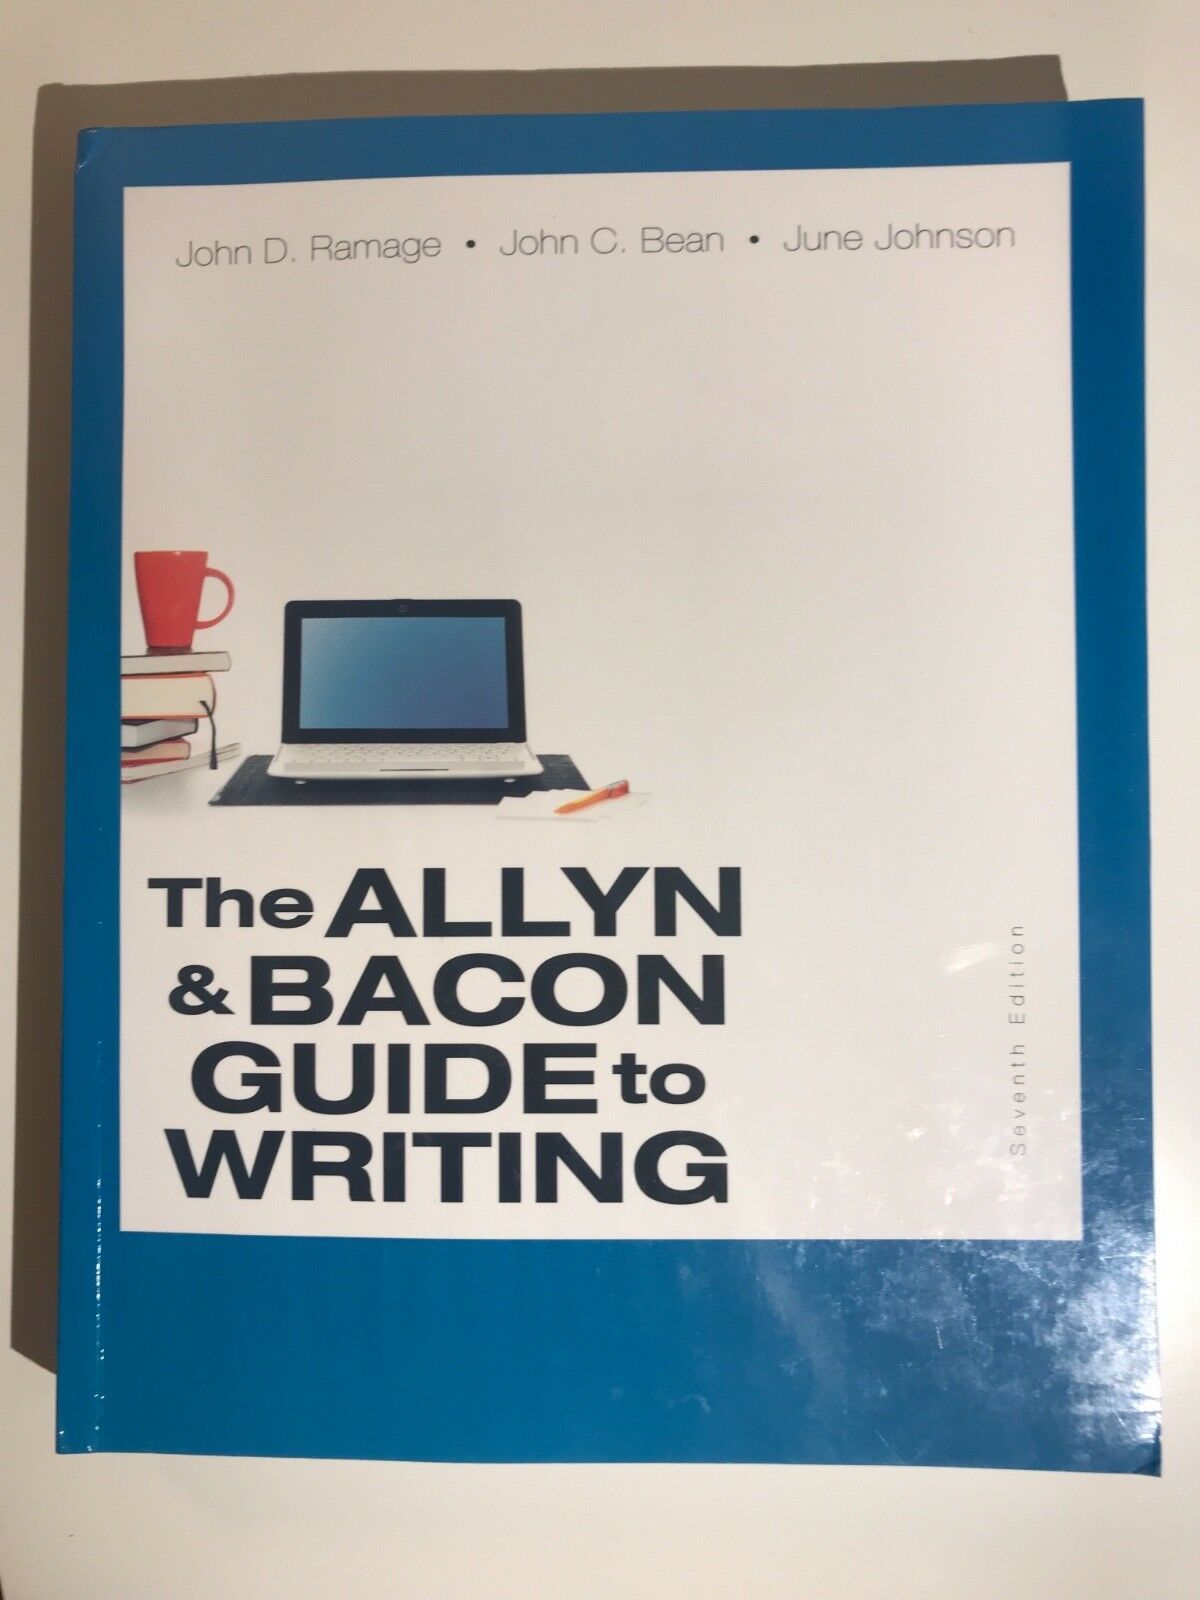 The Allyn and Bacon Guide to Writing by John C. Bean, June Johnson .